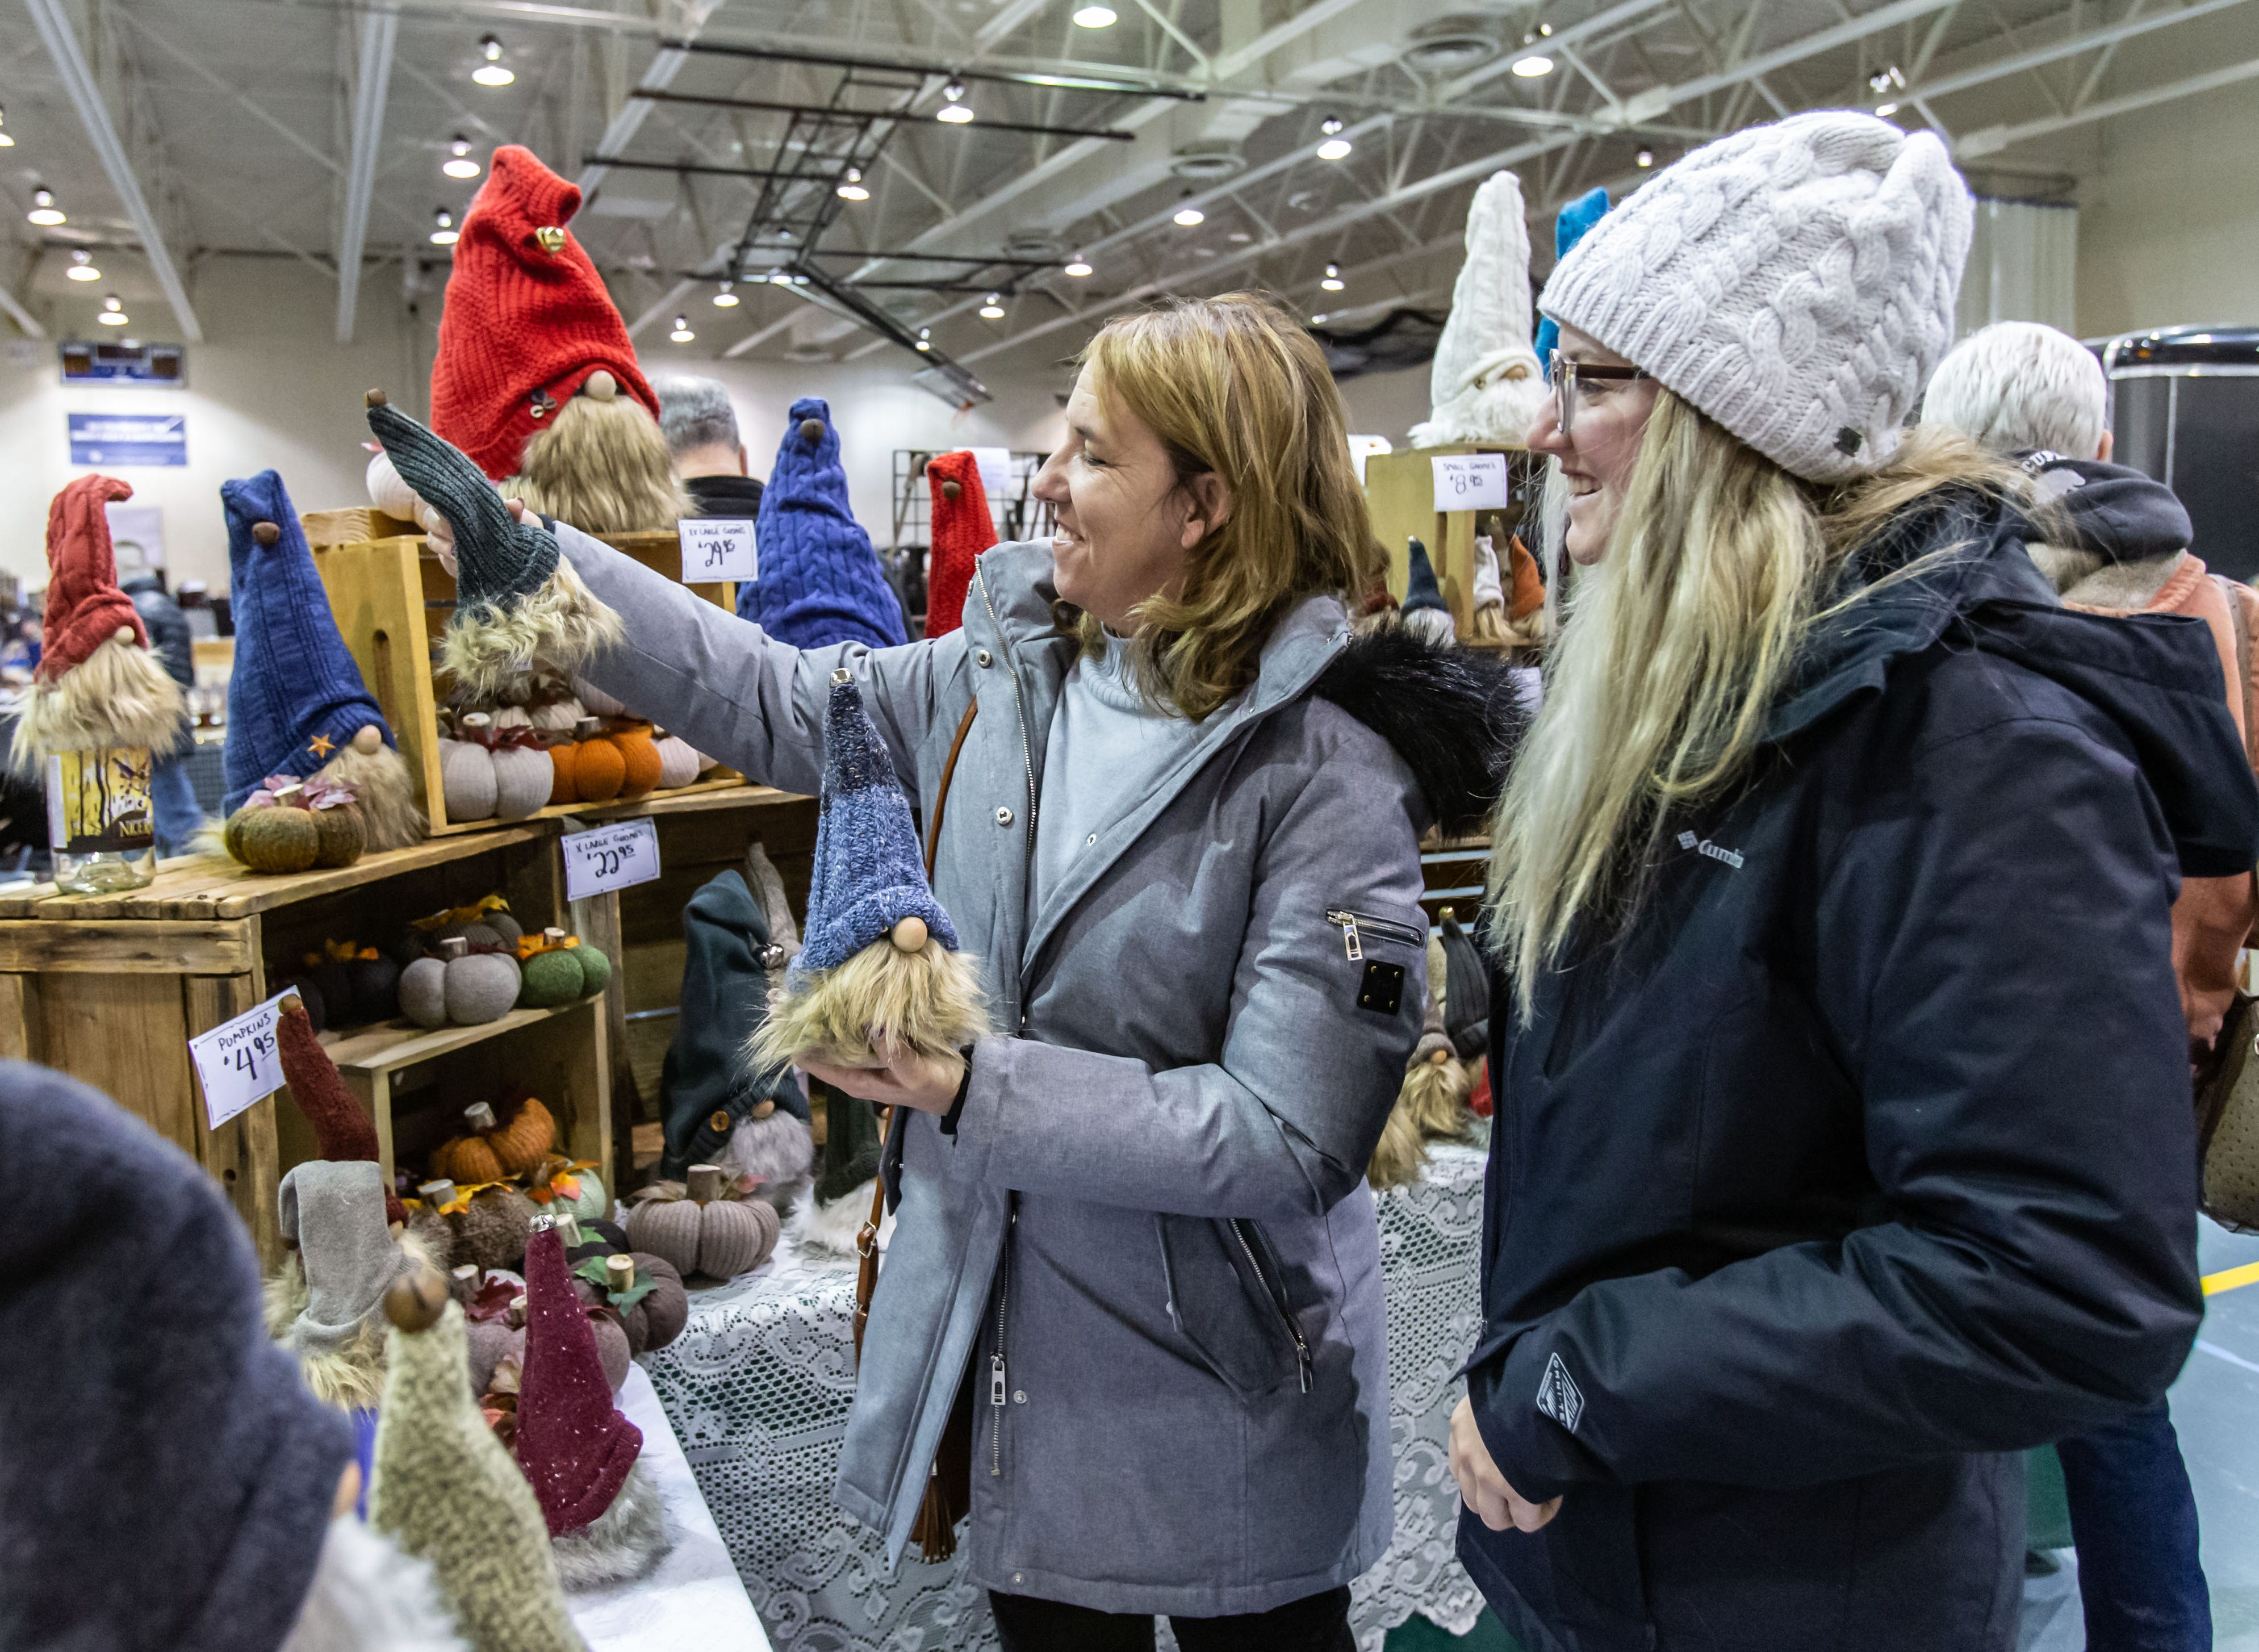 Julie March (left) of Waukesha and her daughter Katelyn shop for handmade gnomes during the re:Craft and Relic show at the Milwaukee County Sports Complex in Franklin on Sunday, Jan. 27, 2019. The show offers vintage, upcycled, antique, handcrafted, reclaimed, and locally-sourced goods.